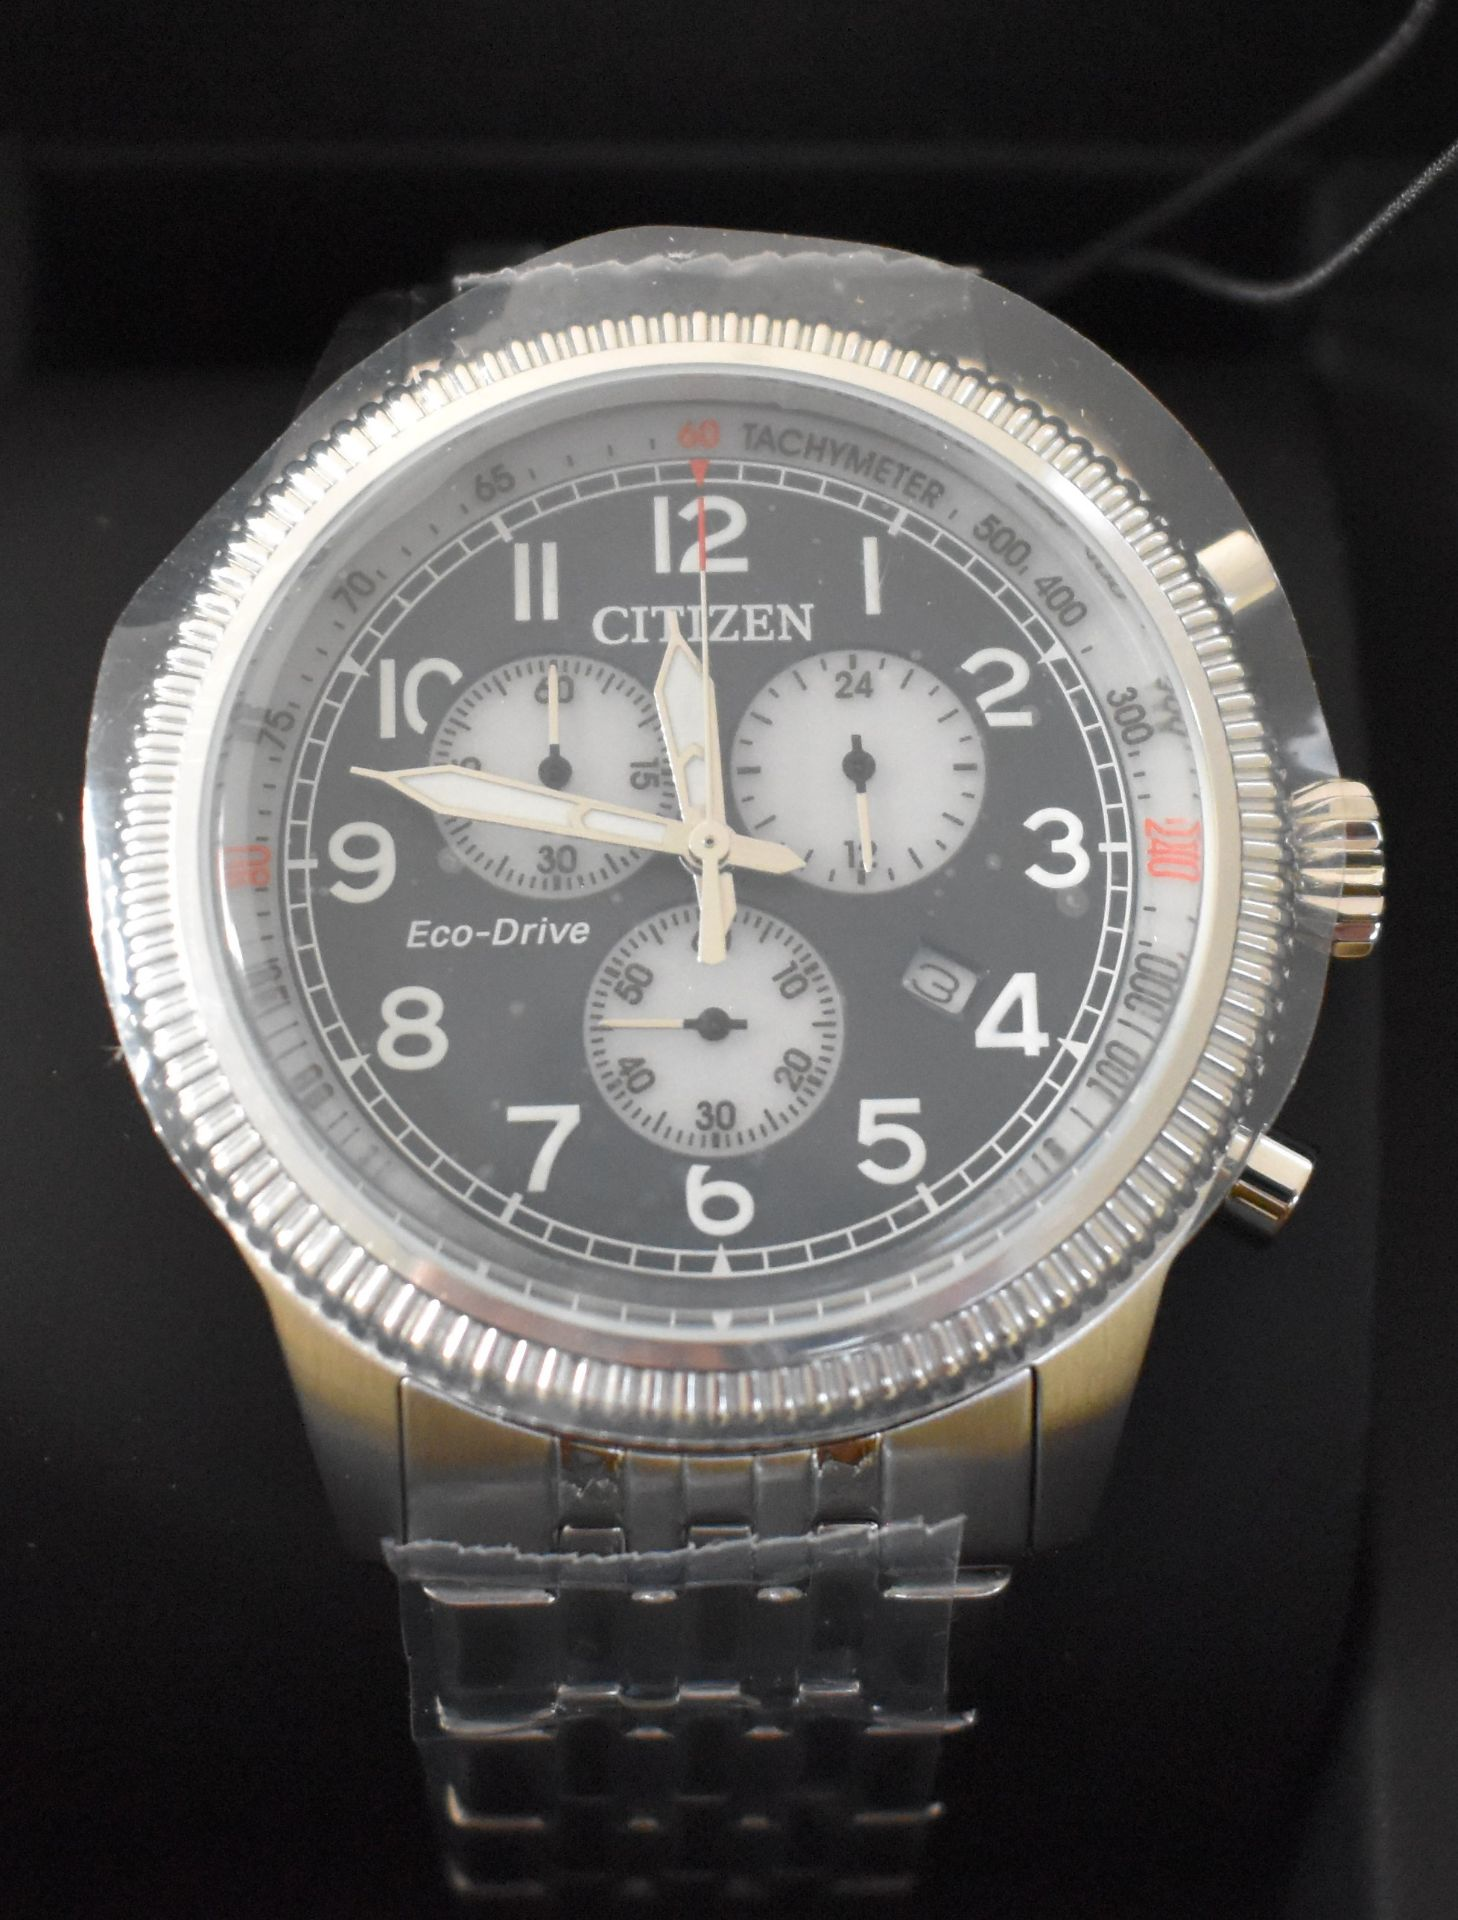 Citizen Men's Watch AT2460-89L - Image 2 of 2